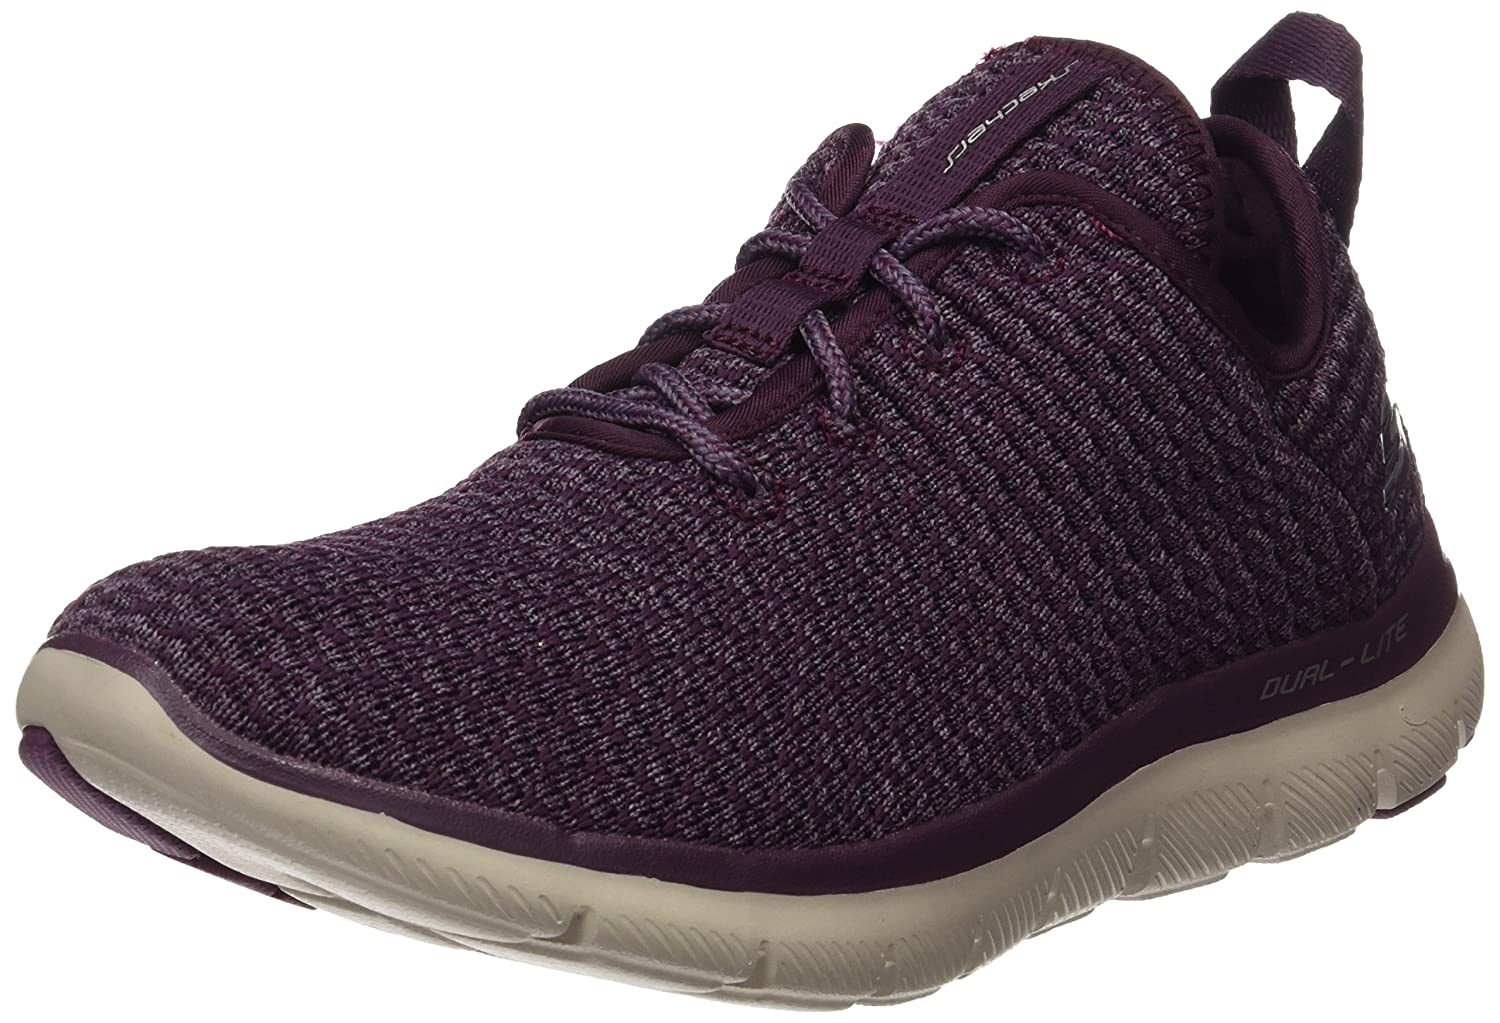 Skechers Sport Women's Flex Appeal 2.0 Bold Move Fashion Sneaker B01N24O3LK 11 B(M) US|Plum